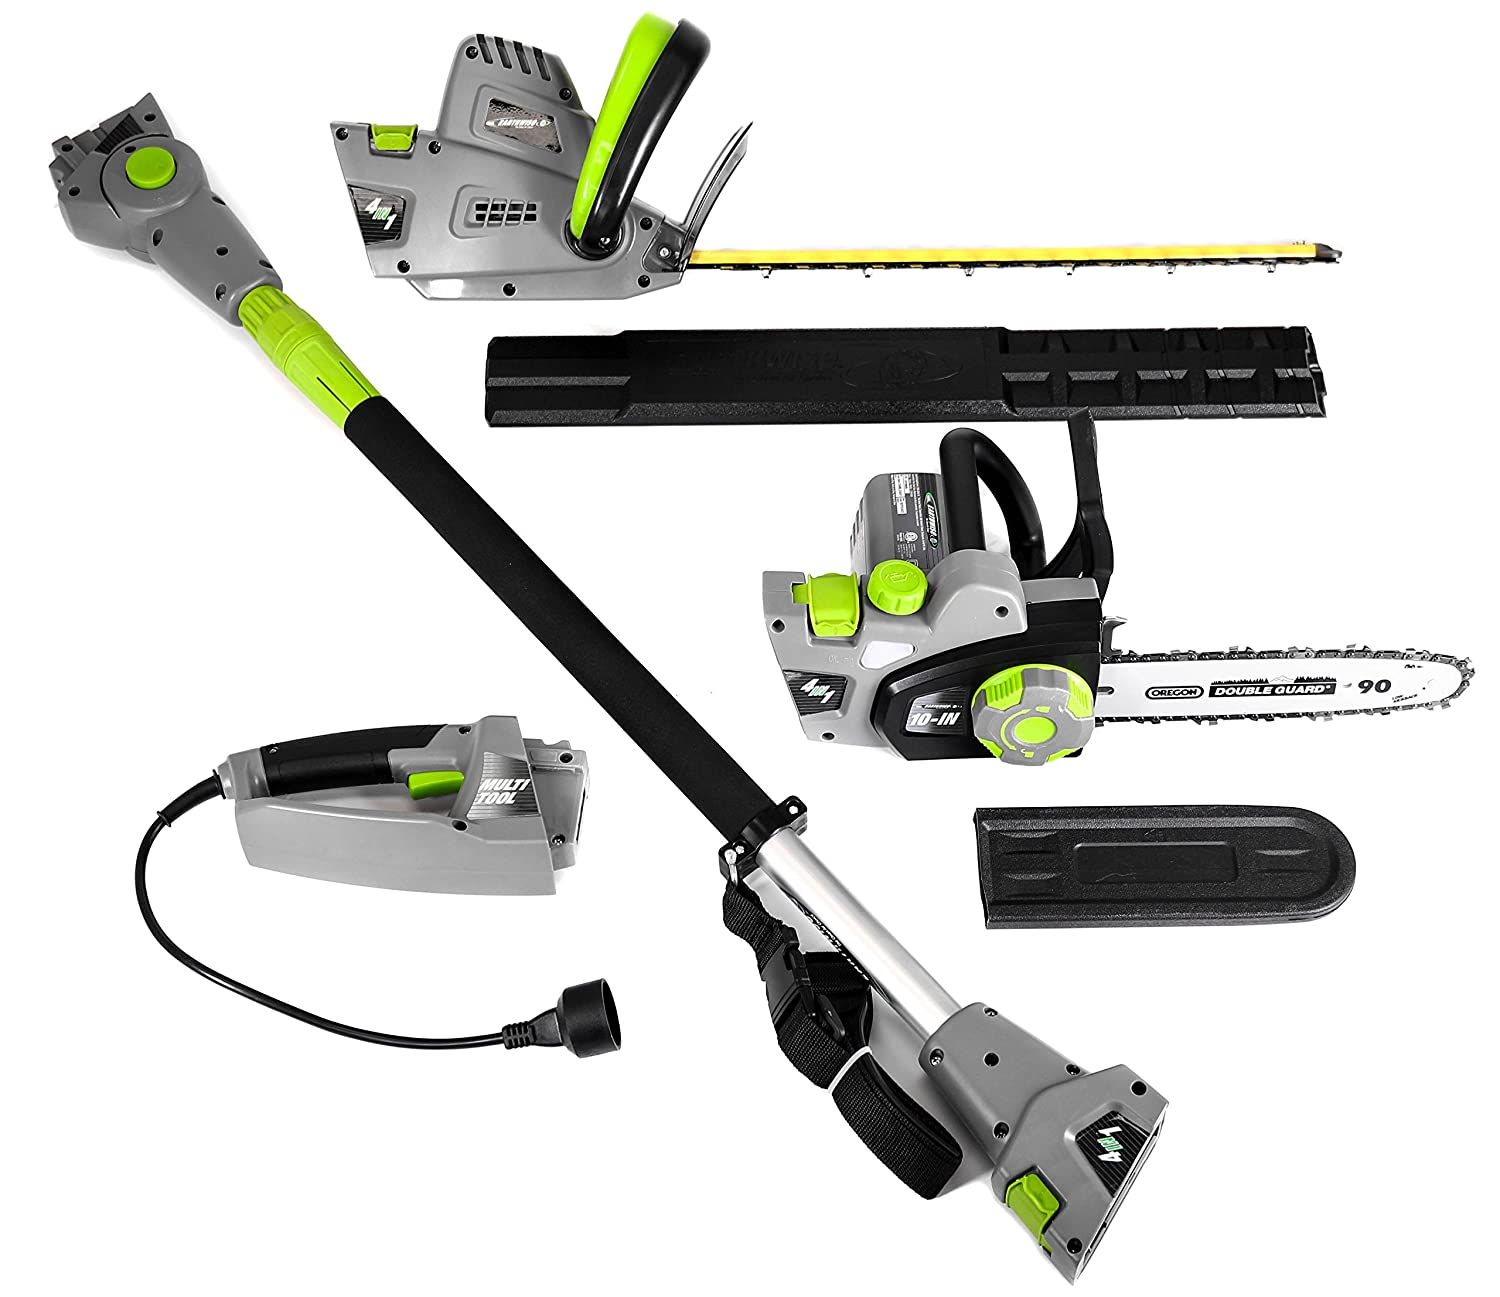 Amazon.com : Earthwise CVP41810 4-in-1 Multi Tool Saw, Chainsaw, Pole Hedge  and Trimmer : Garden & Outdoor